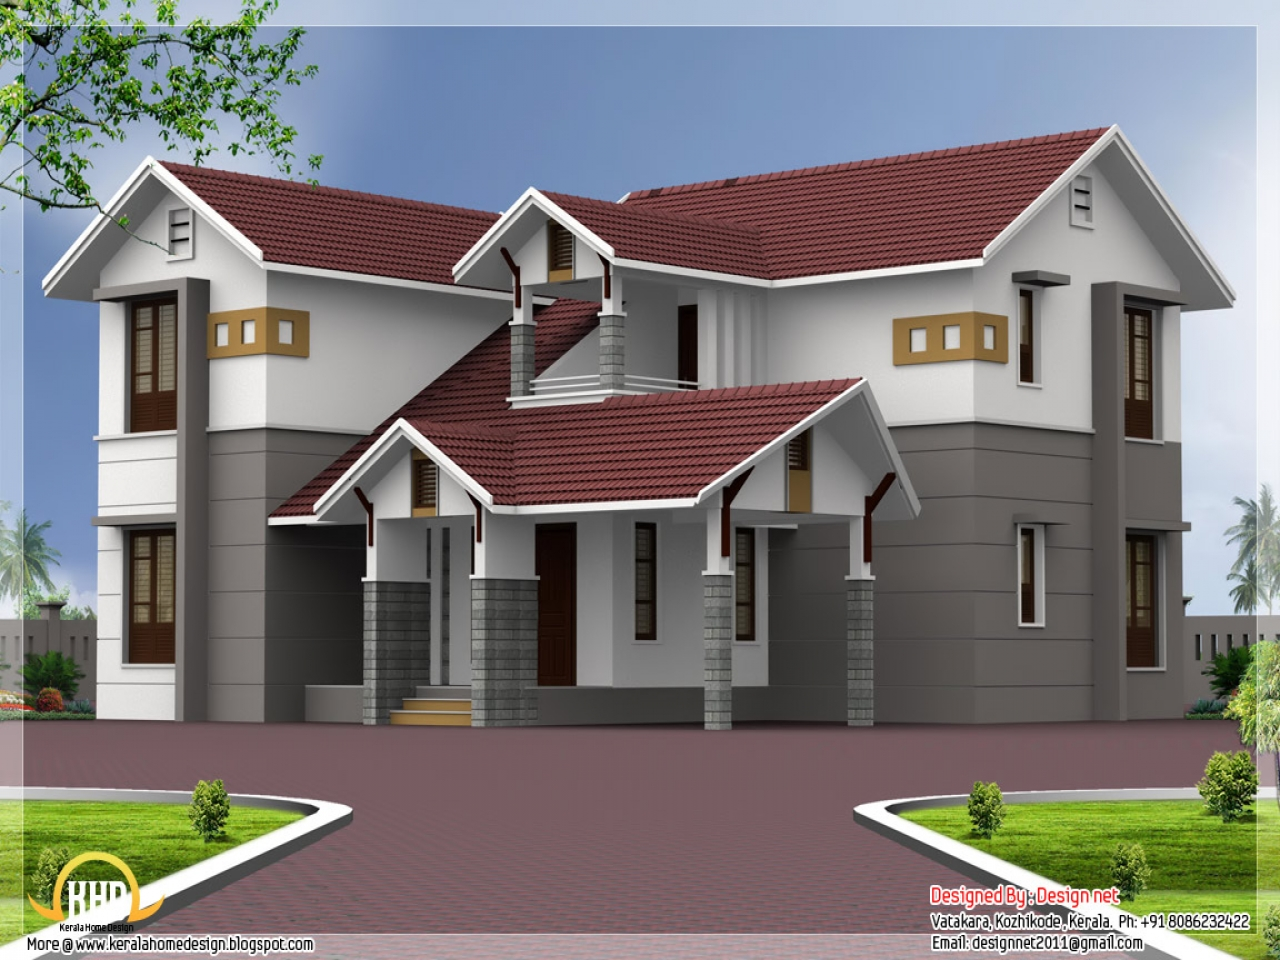 Sloped Roof House Design Flat Roof Slope Design, roof house design.